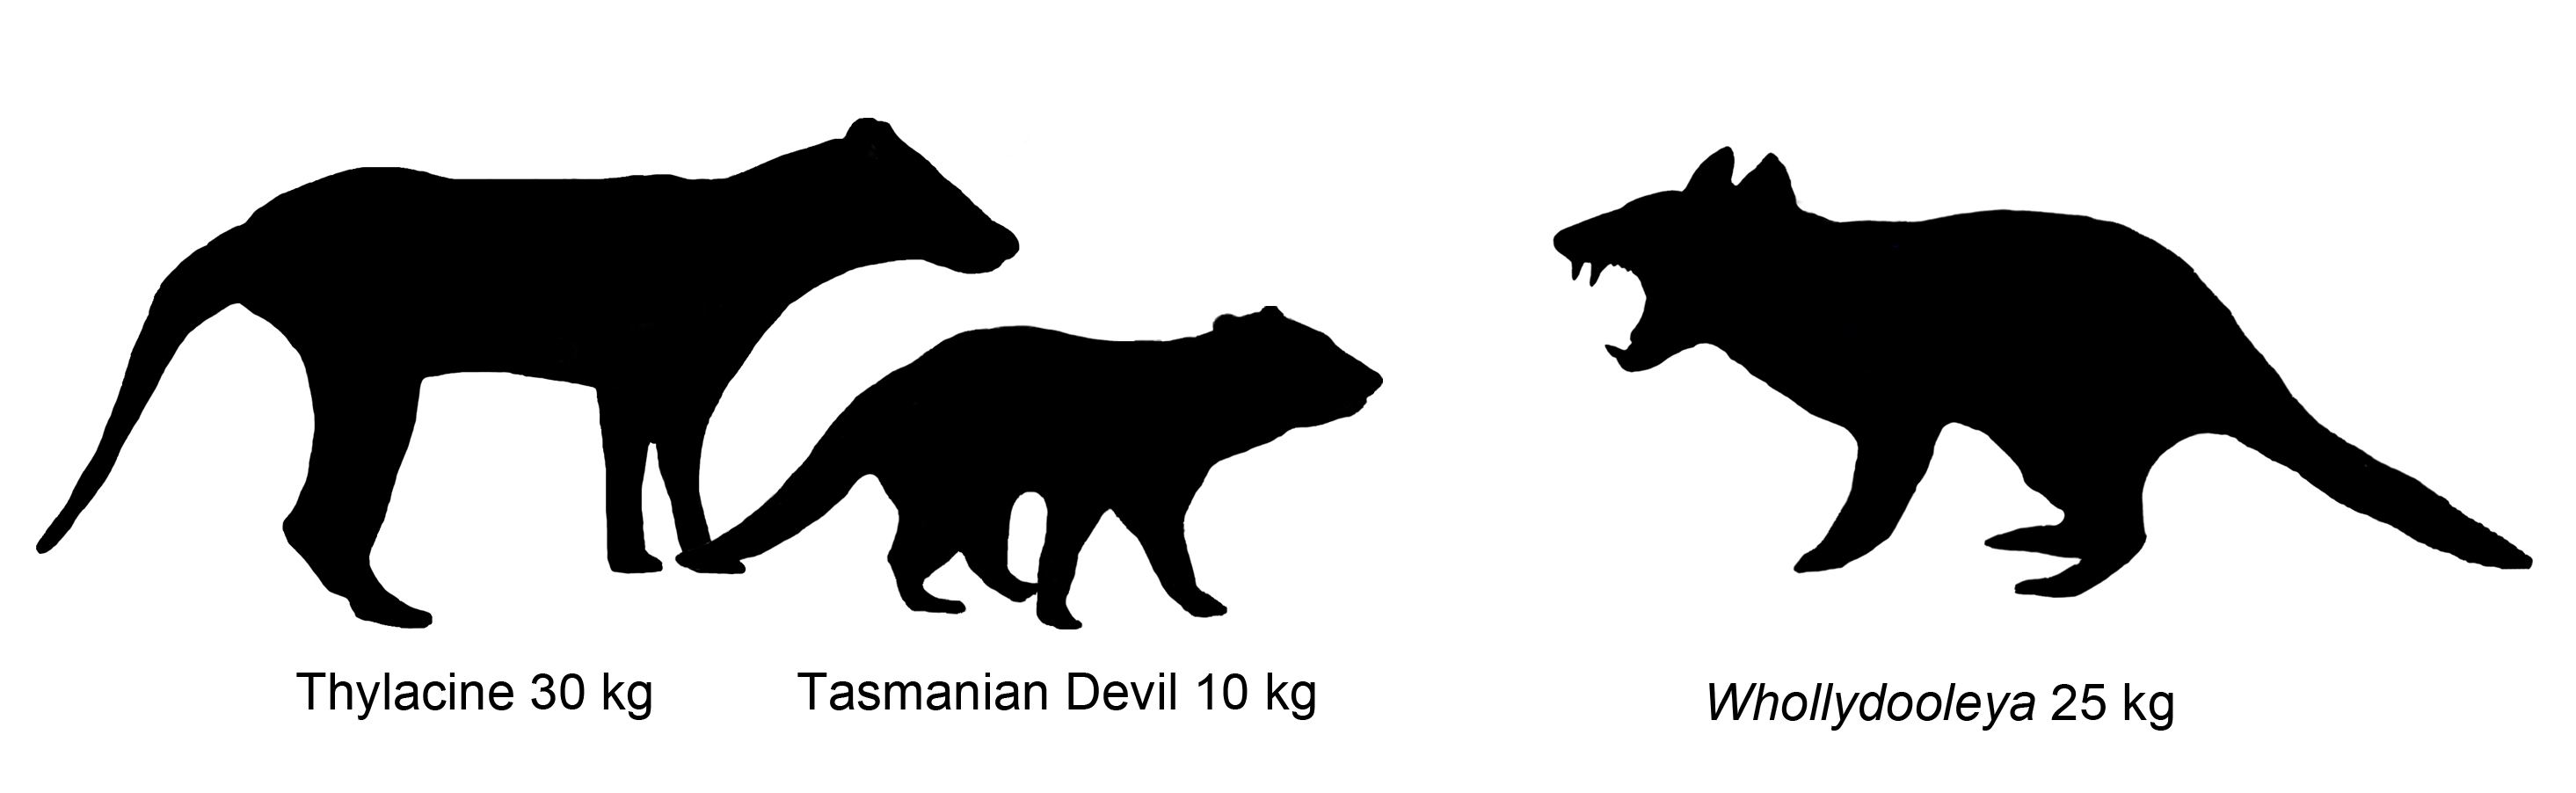 The outlines of three animals.